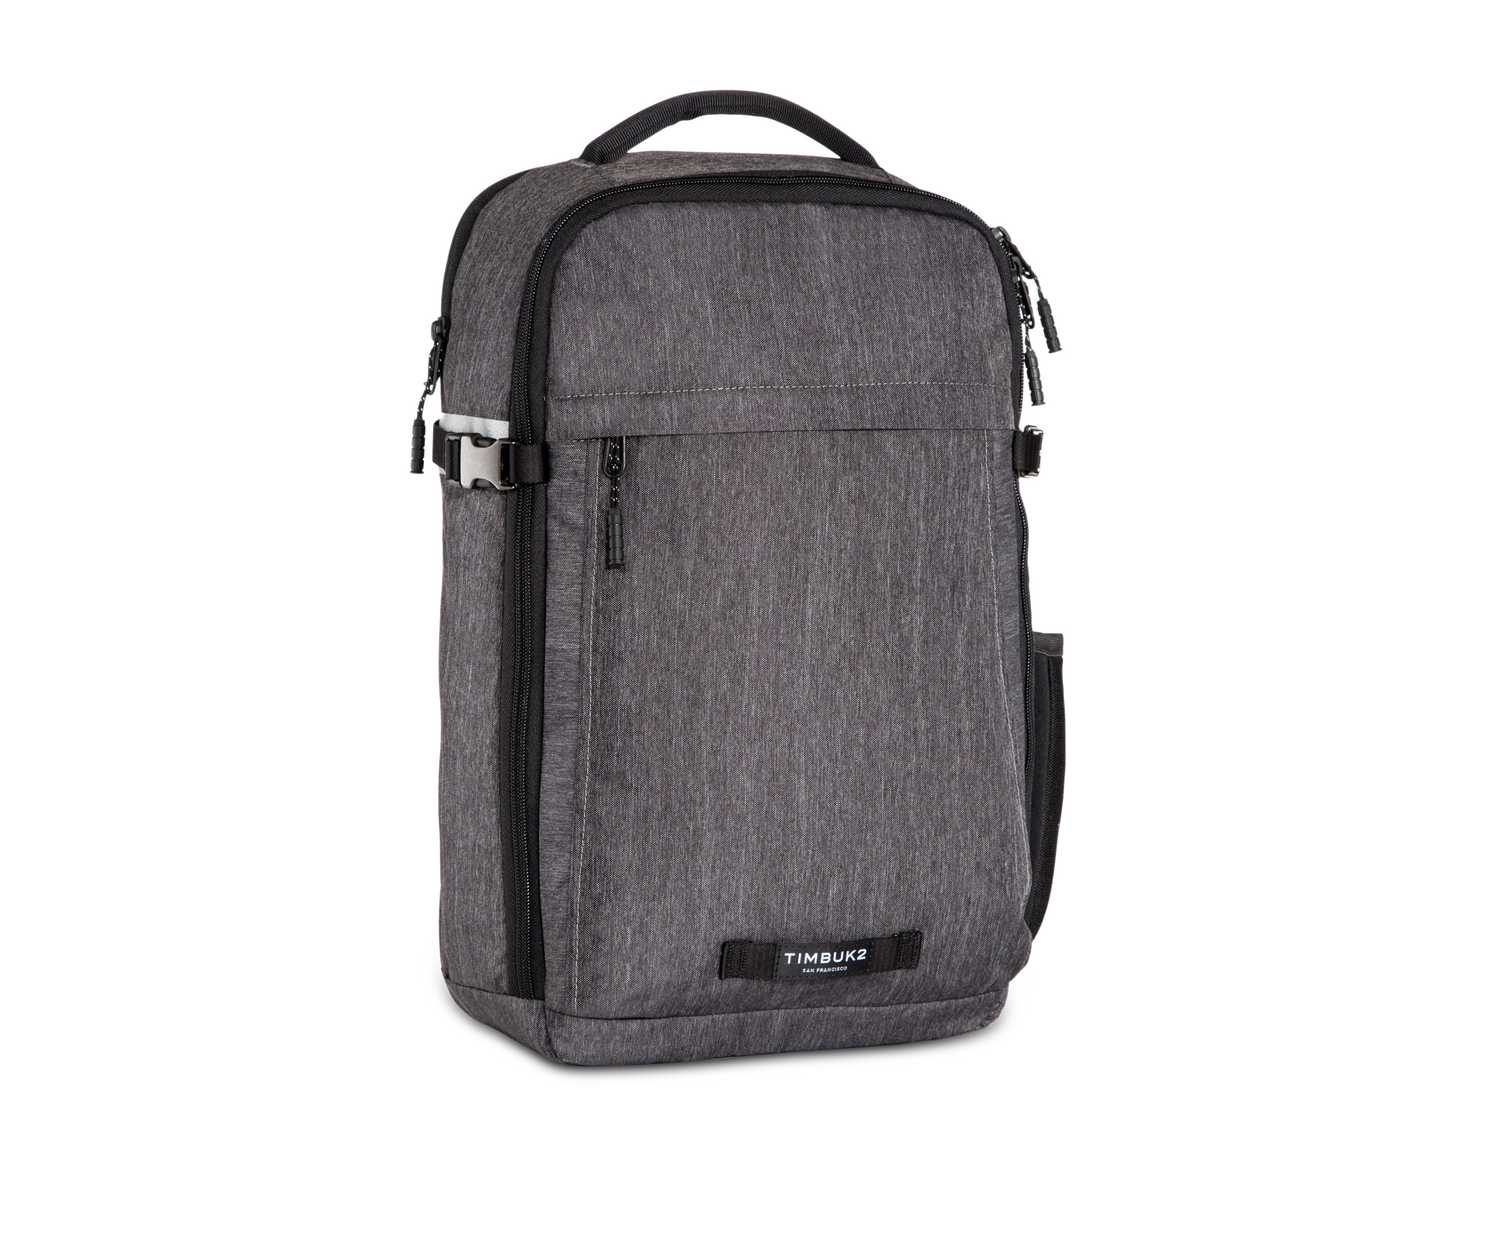 Timbuk2 1849 - The Division Pack